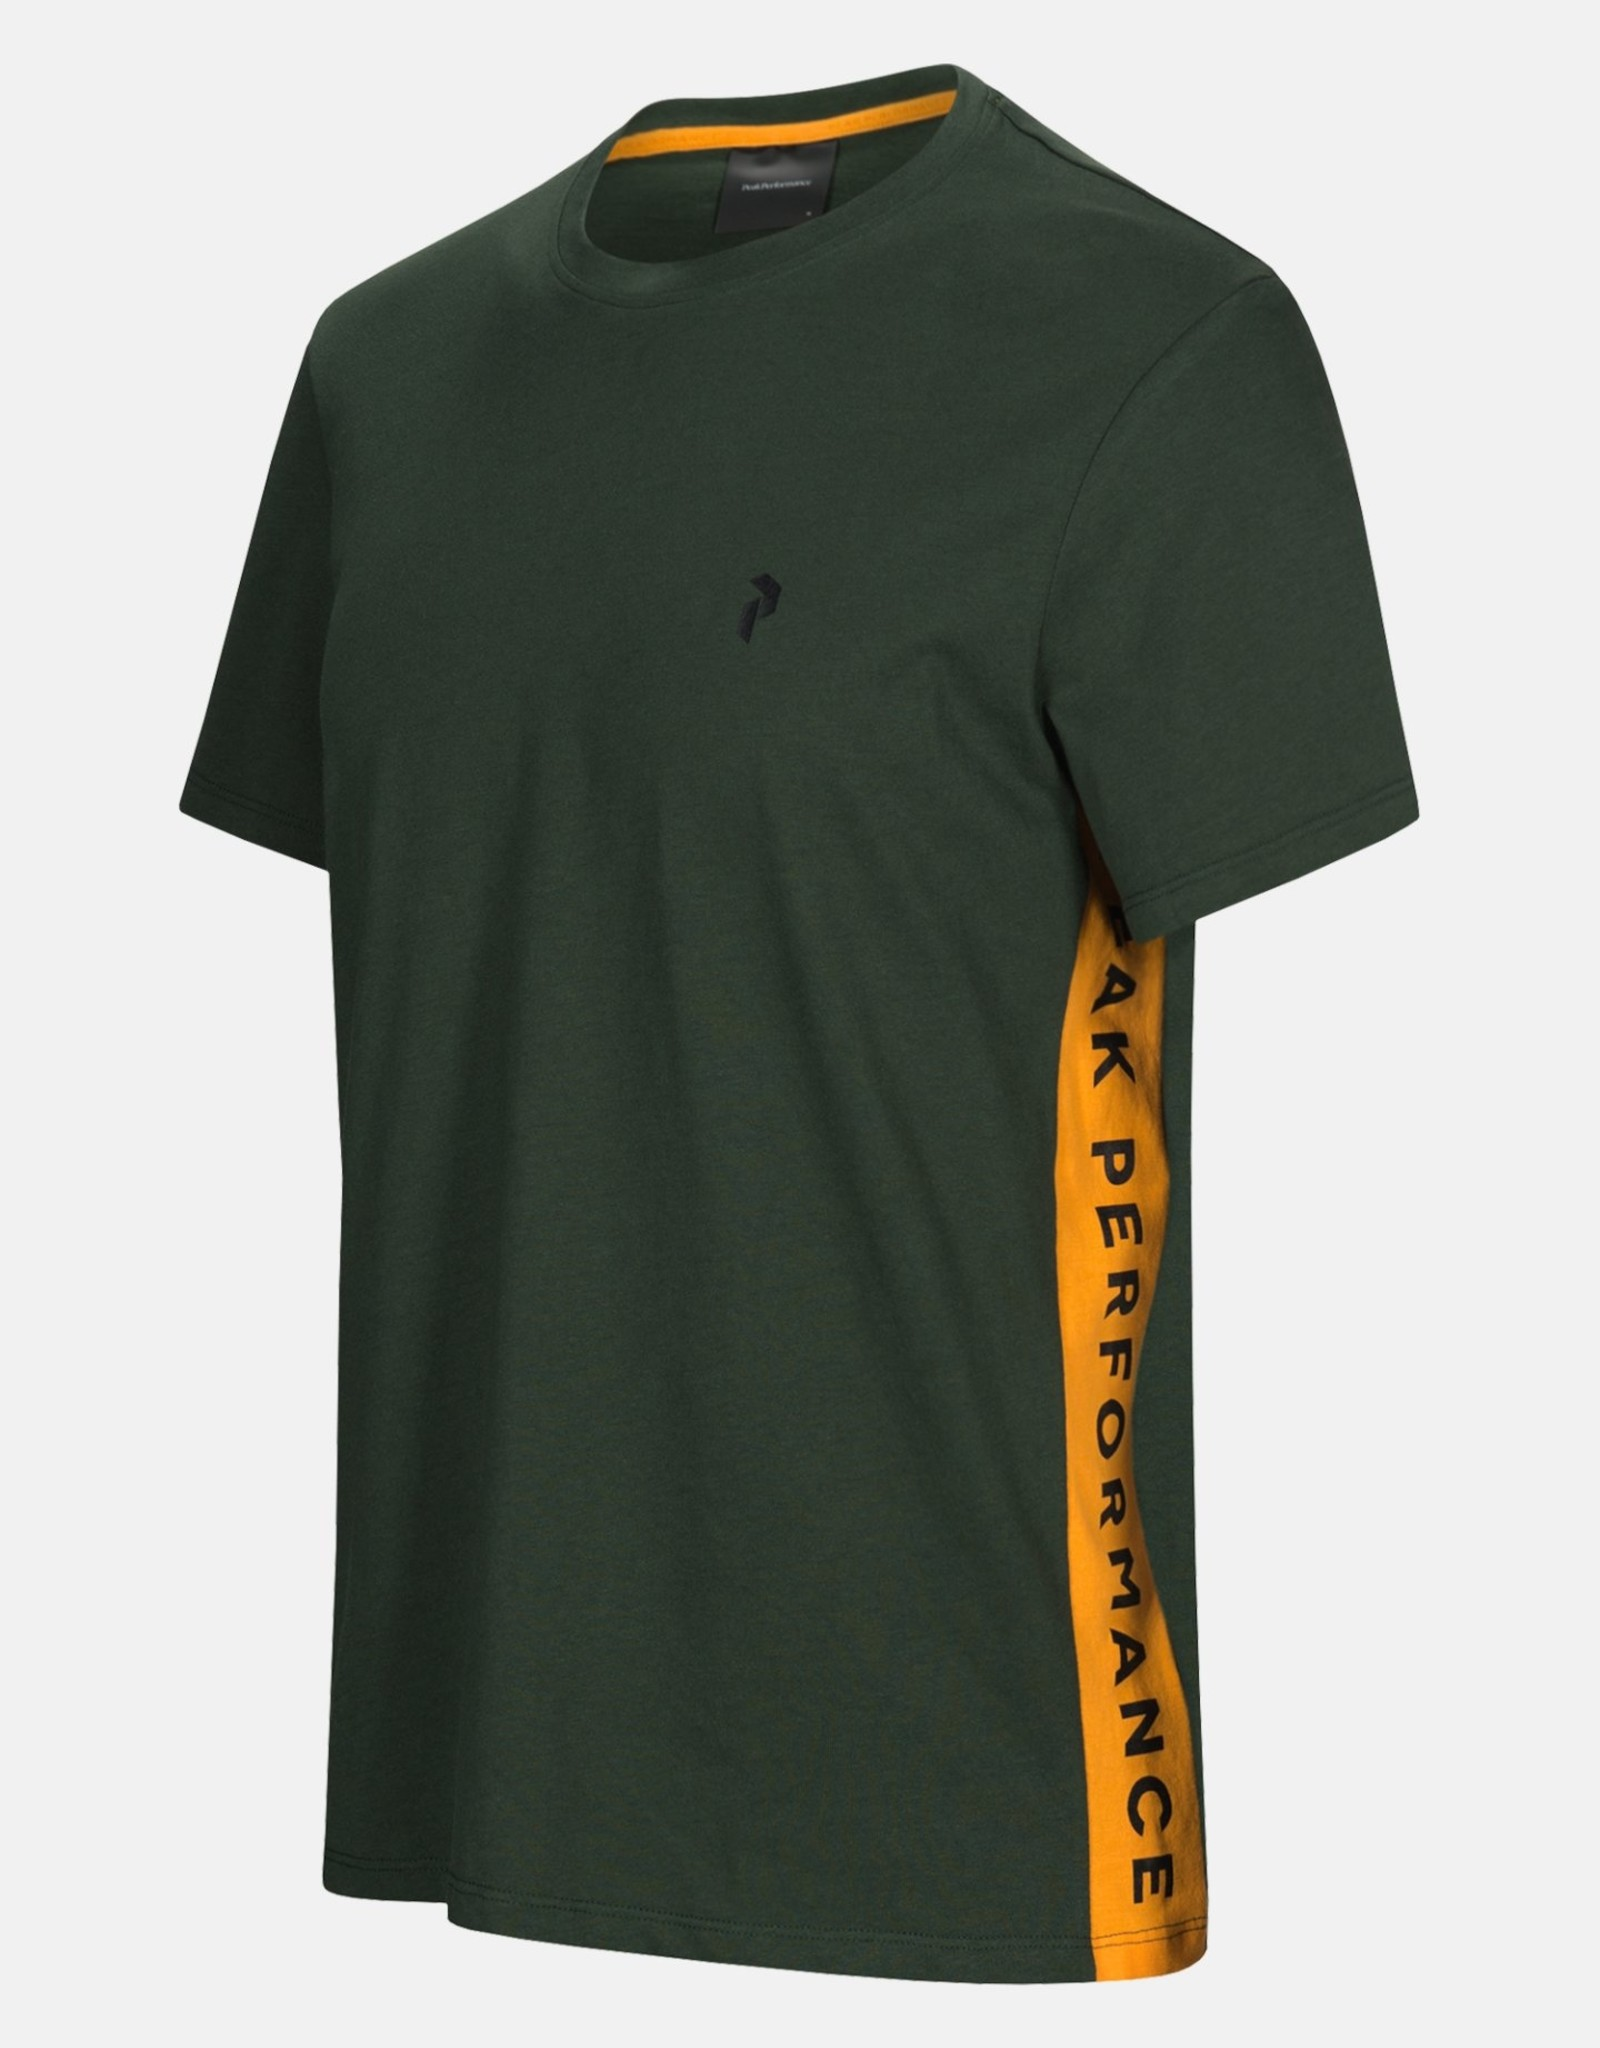 Peak Performance Peak Performance Men's Rider Tee - S2020